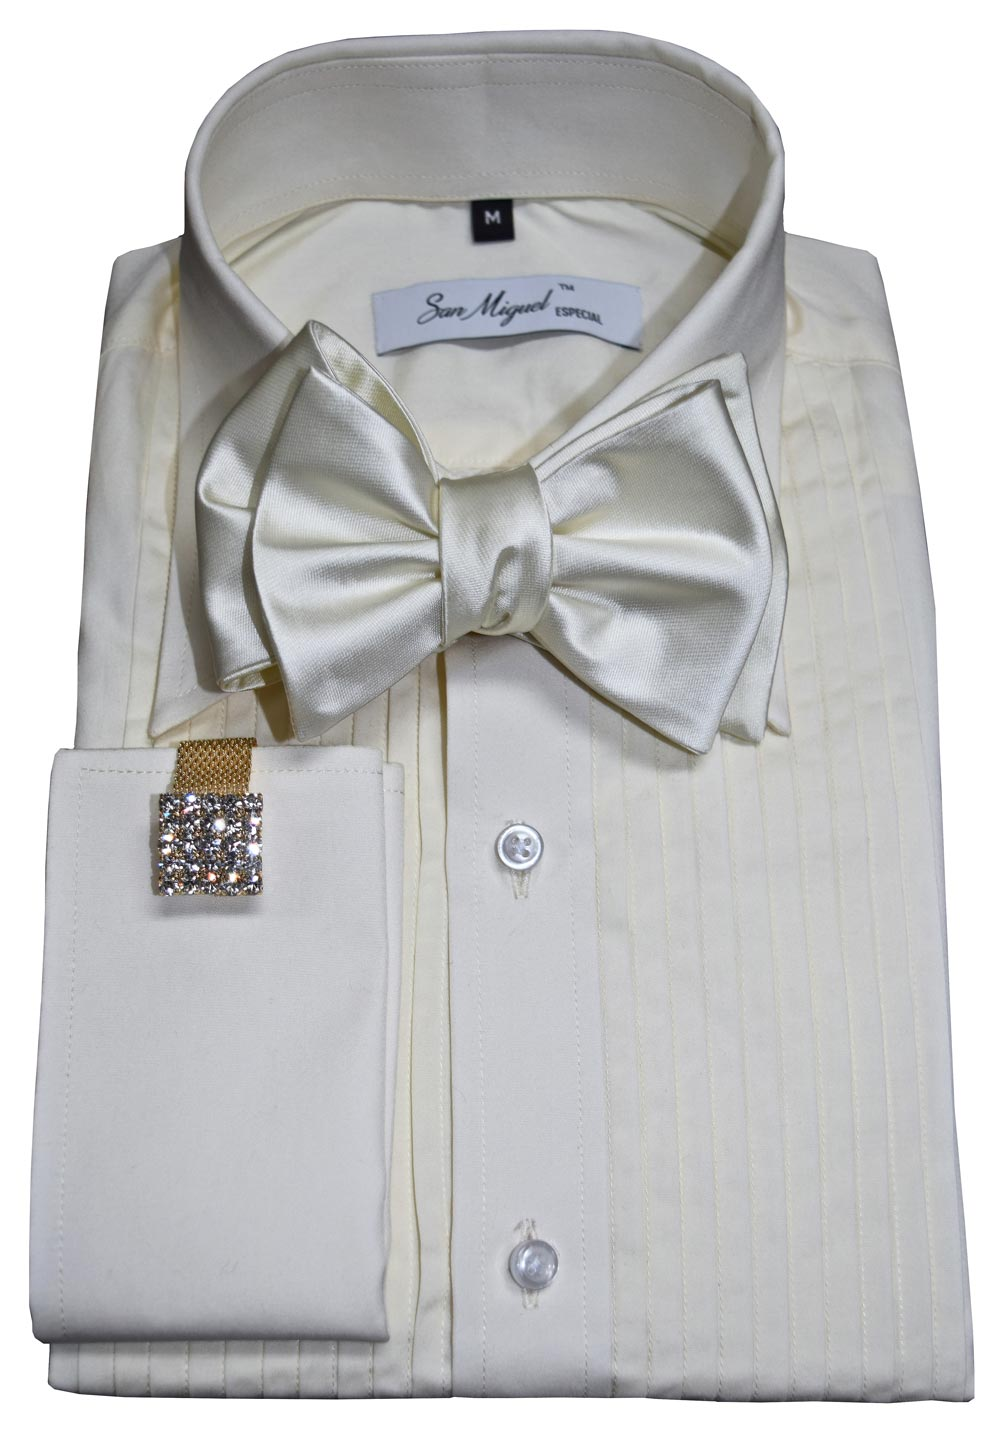 Trim Fit Off-White Tuxedo Shirt - San Miguel